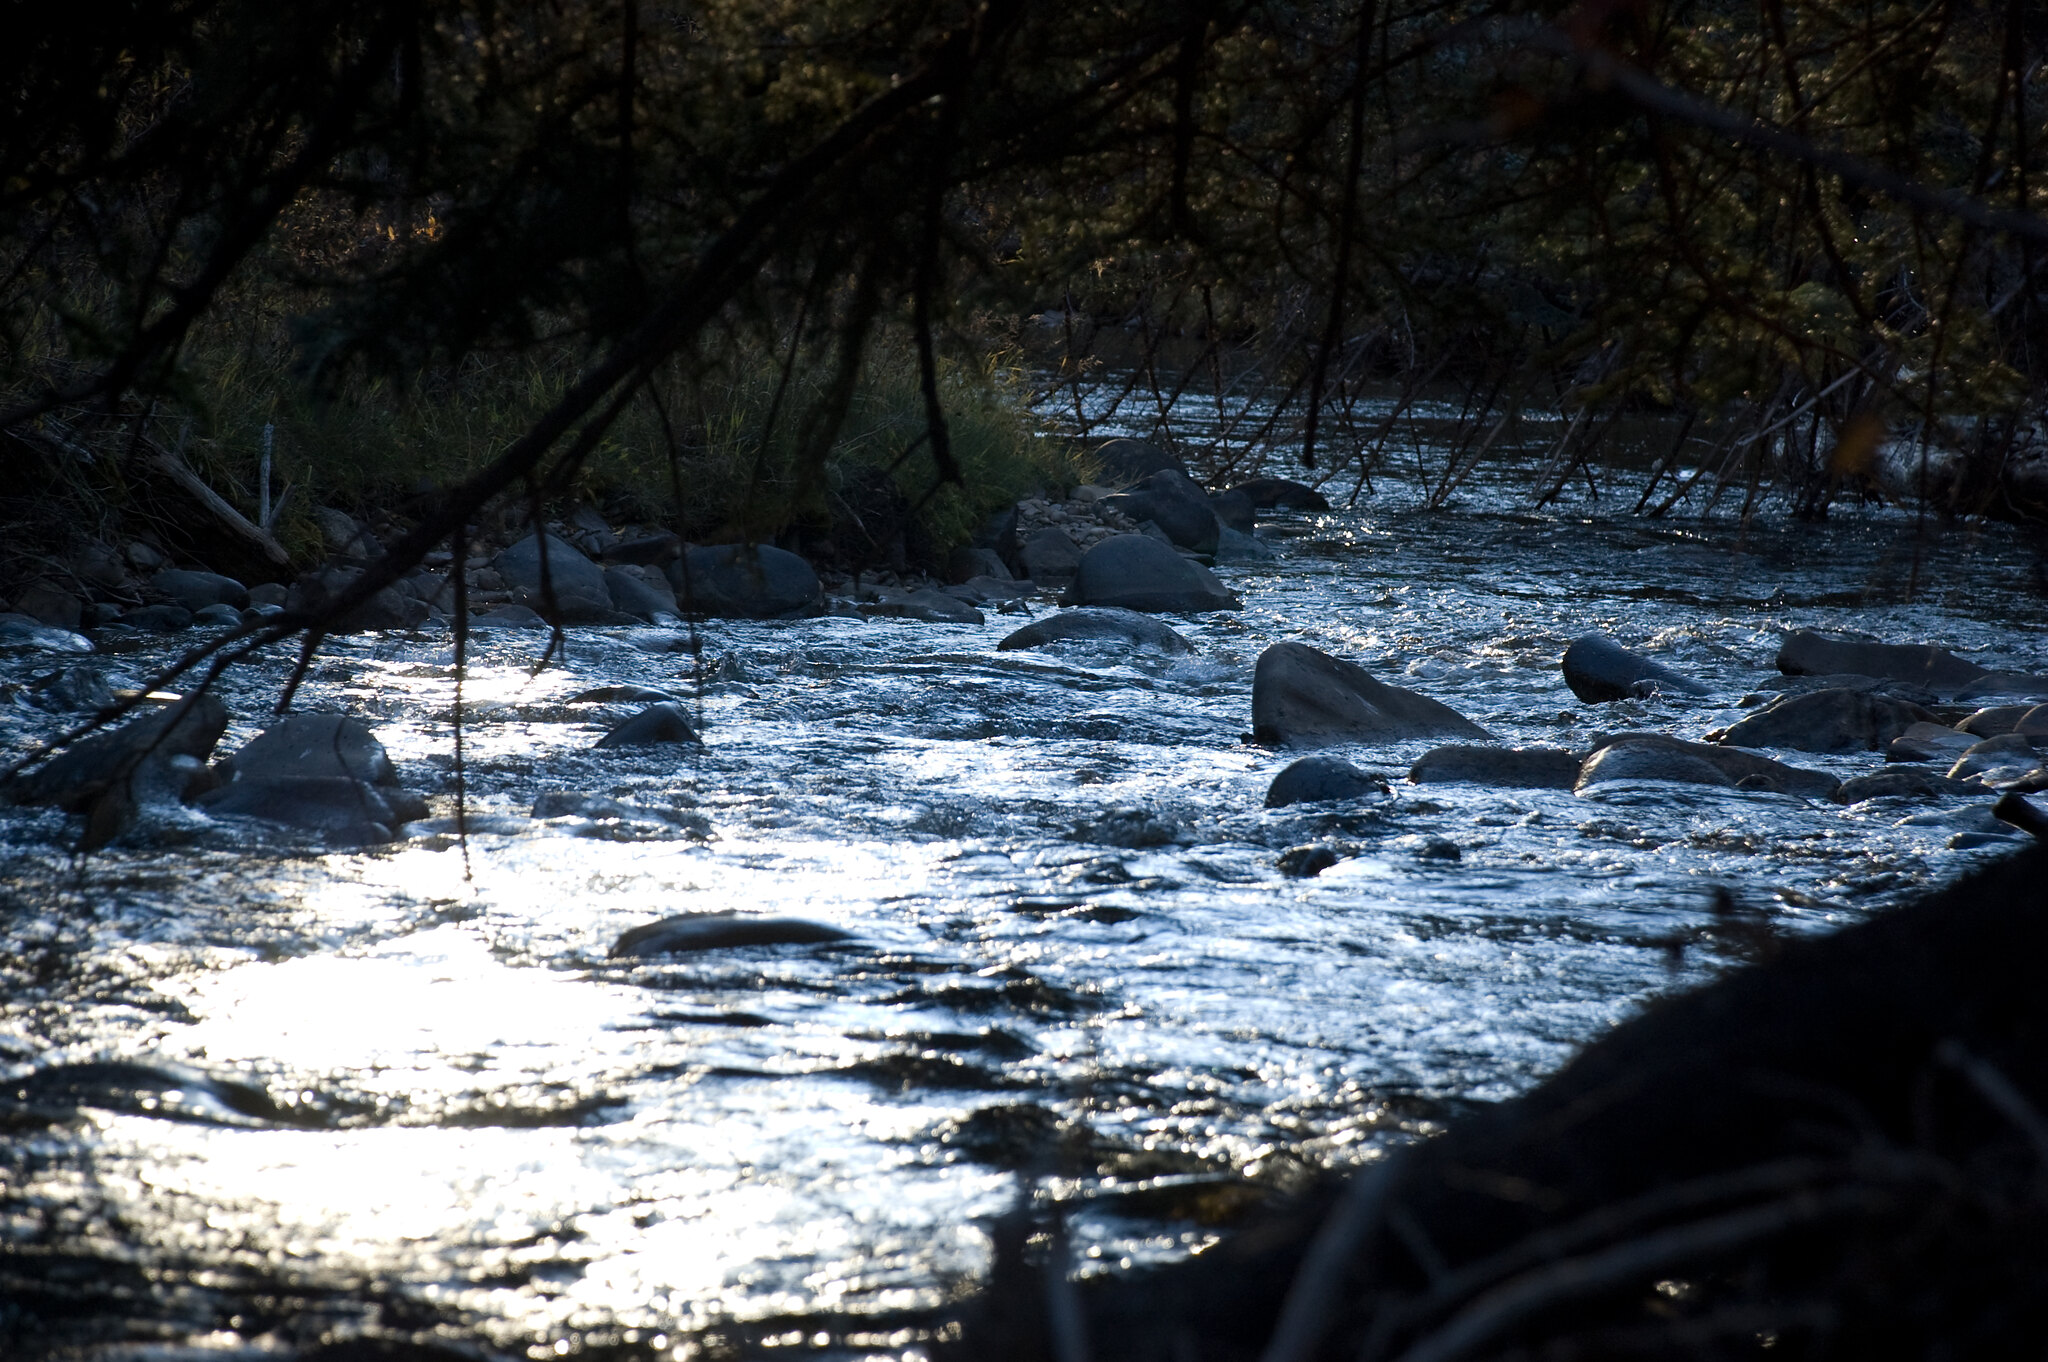 Fly fishing the Dolores River is getting to experience one of Southwest Colorado's best fisheries.